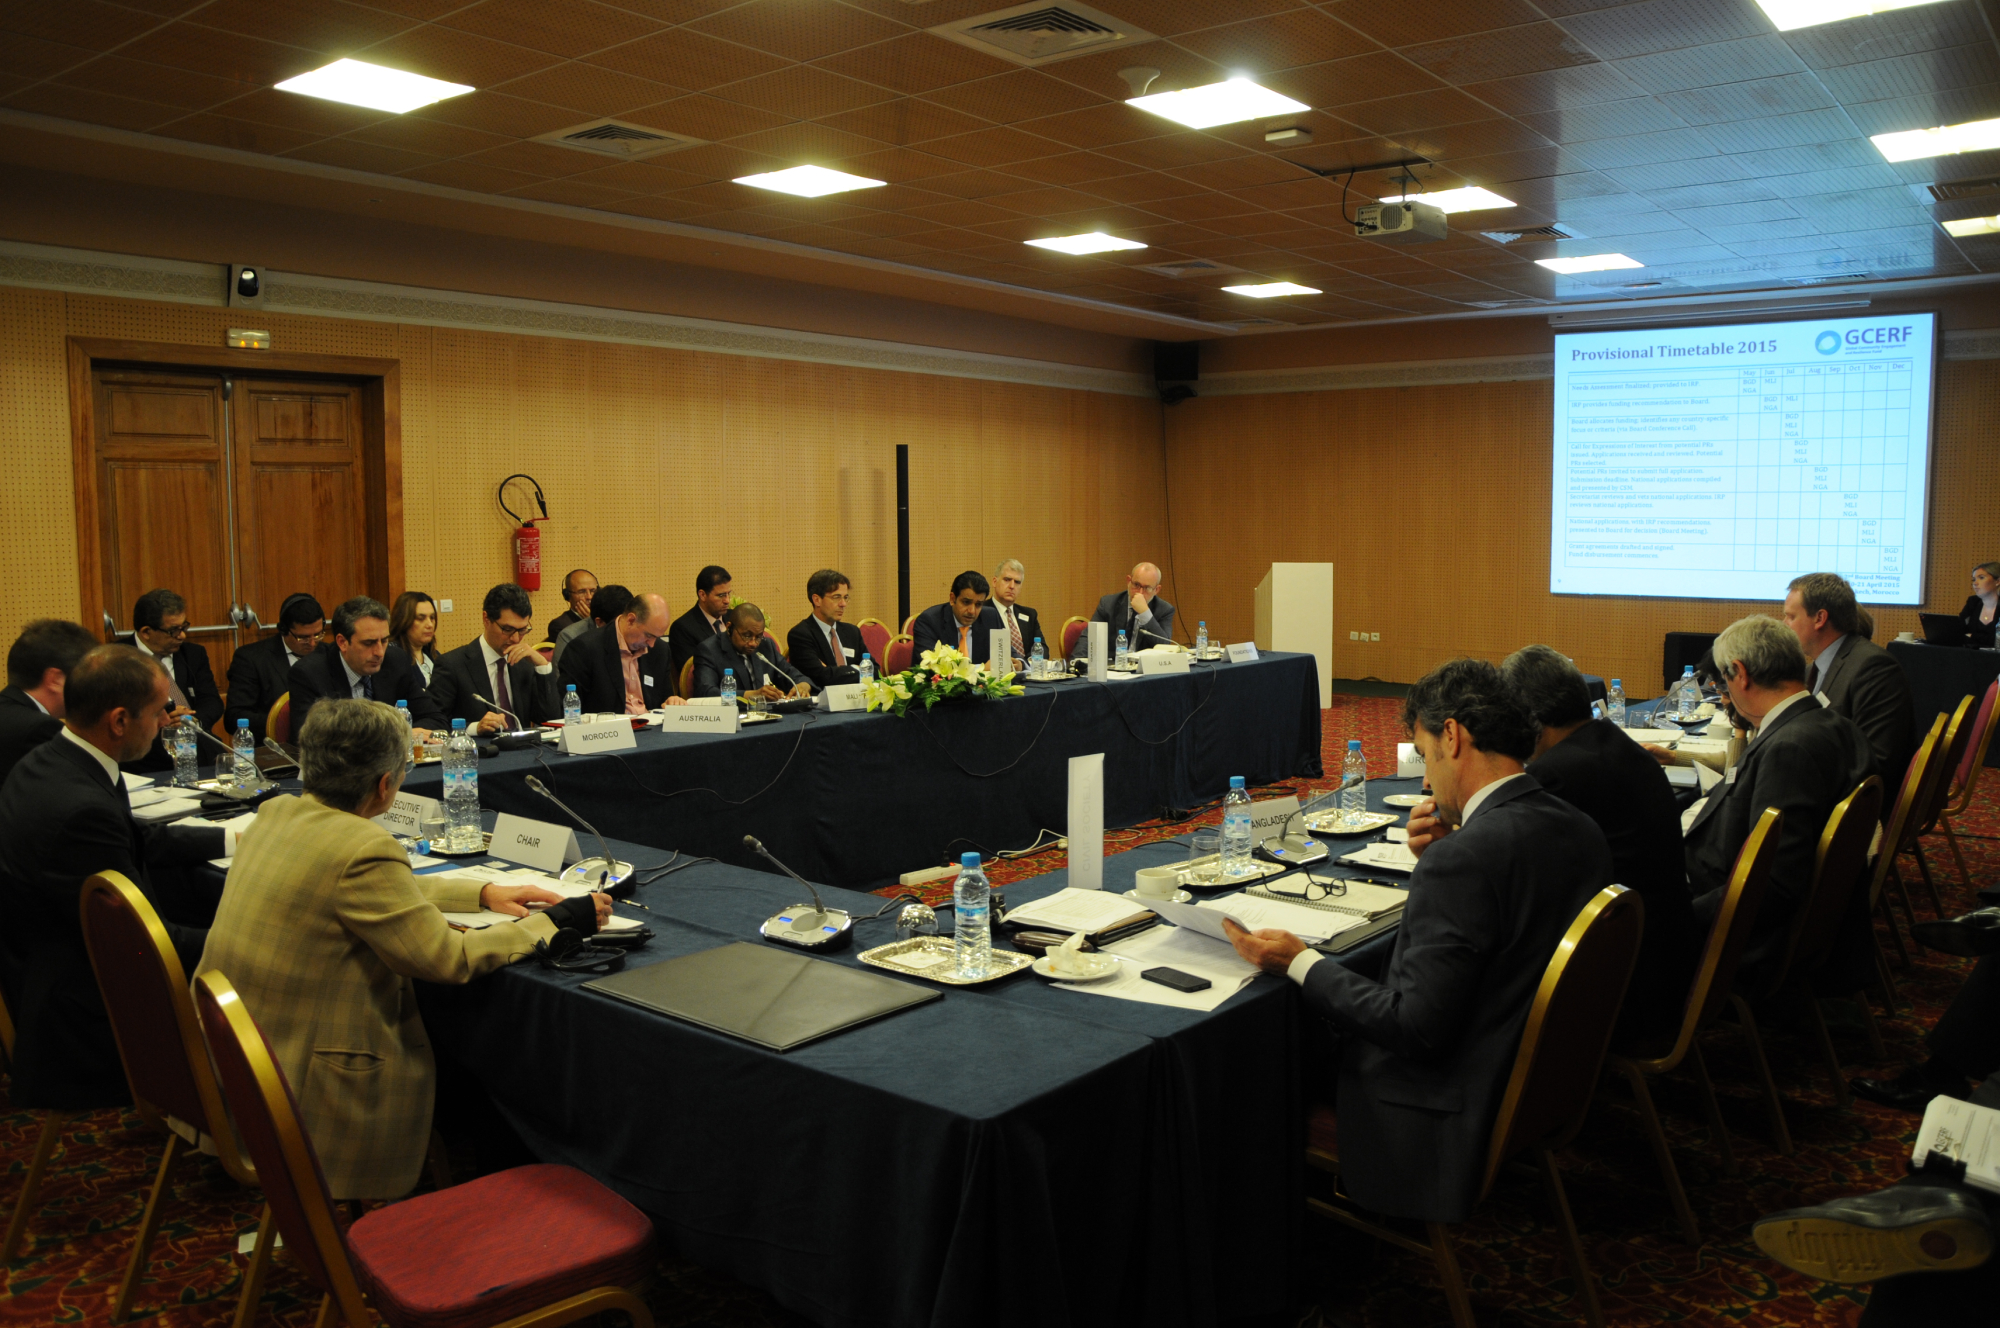 2nd Board Meeting, 20-21 April 2015, Marrakech, Morocco